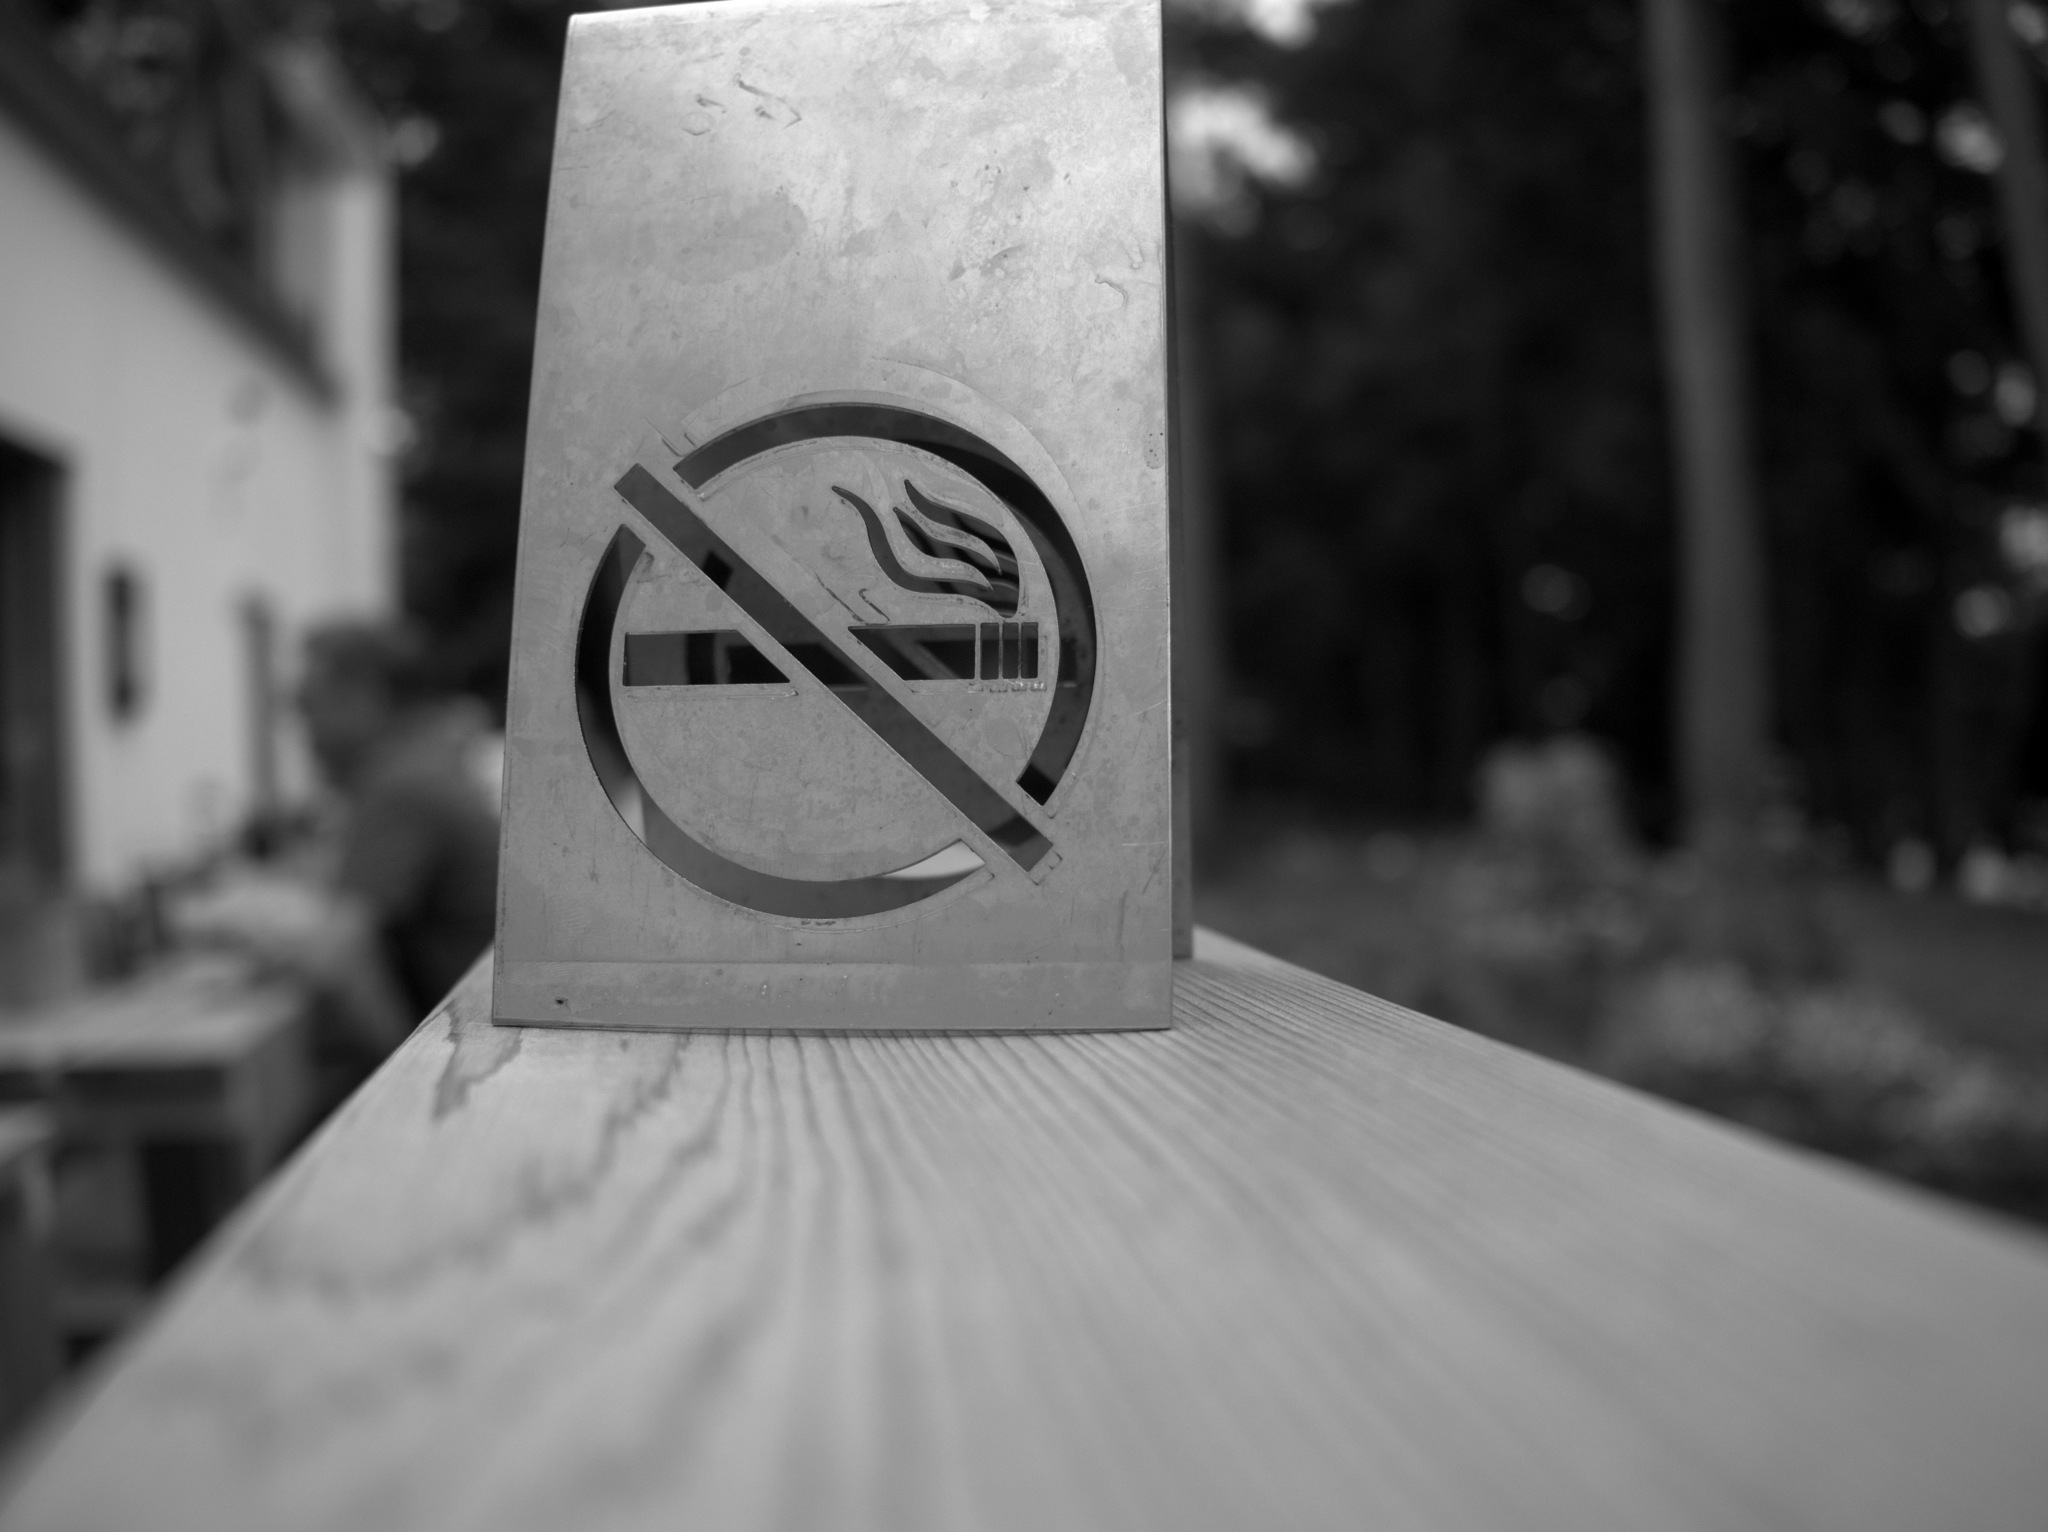 No smoking. by jeremy1960